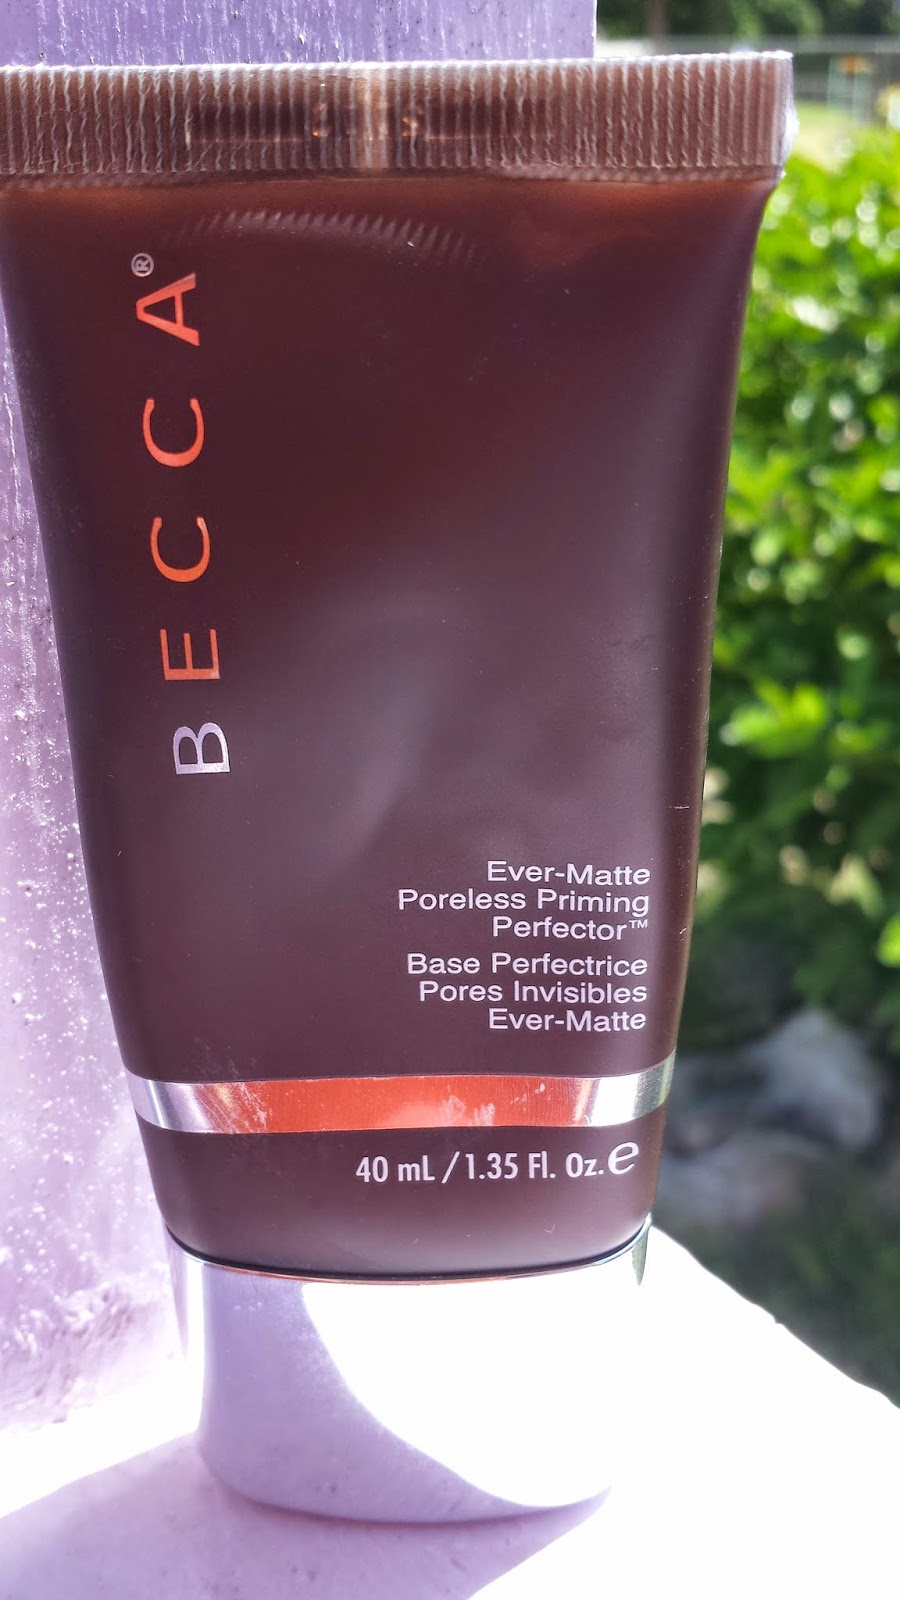 Becca Ever-Matte Poreless Priming Perfector - www.modenmakeup.com